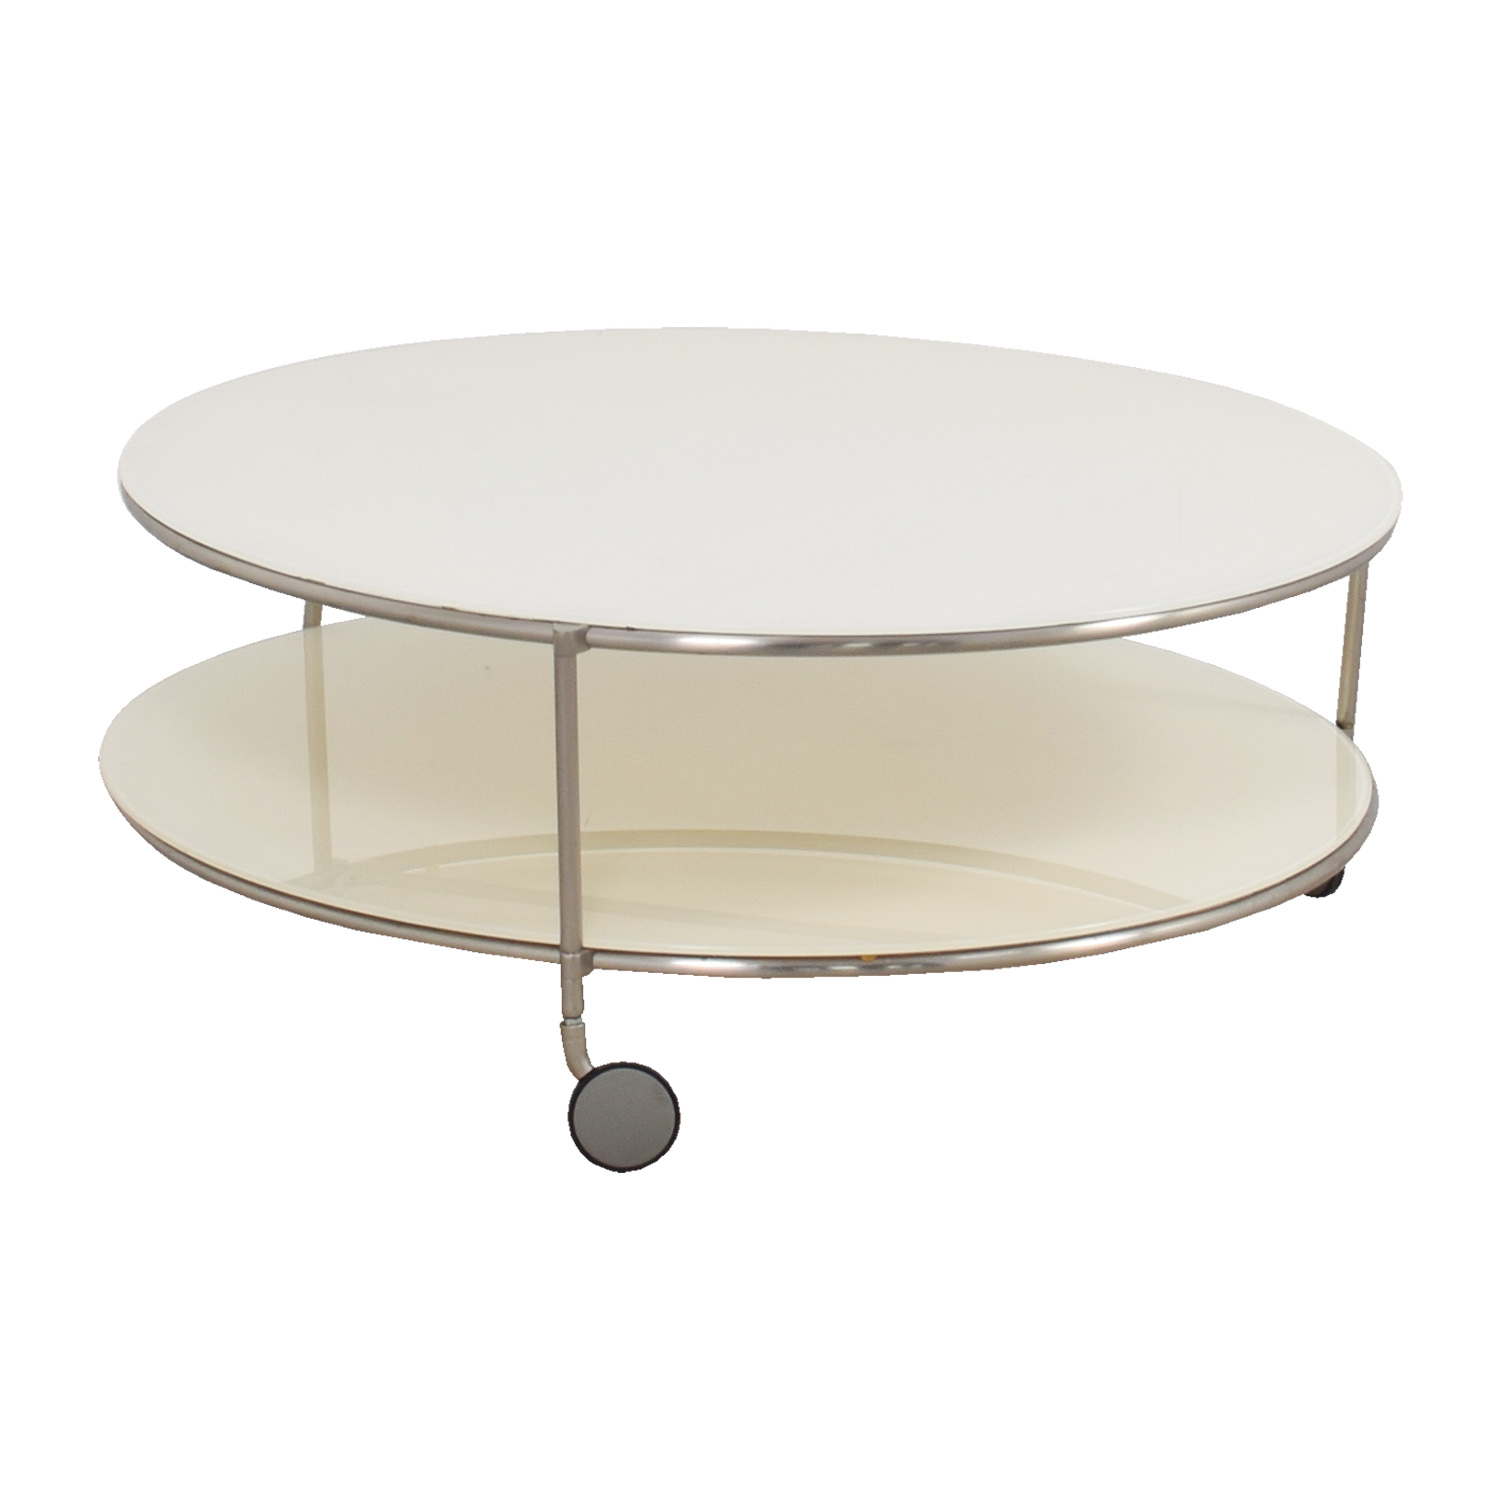 Crate & Barrel Crate & Barrel White Double Glass Cocktail Table on Castors